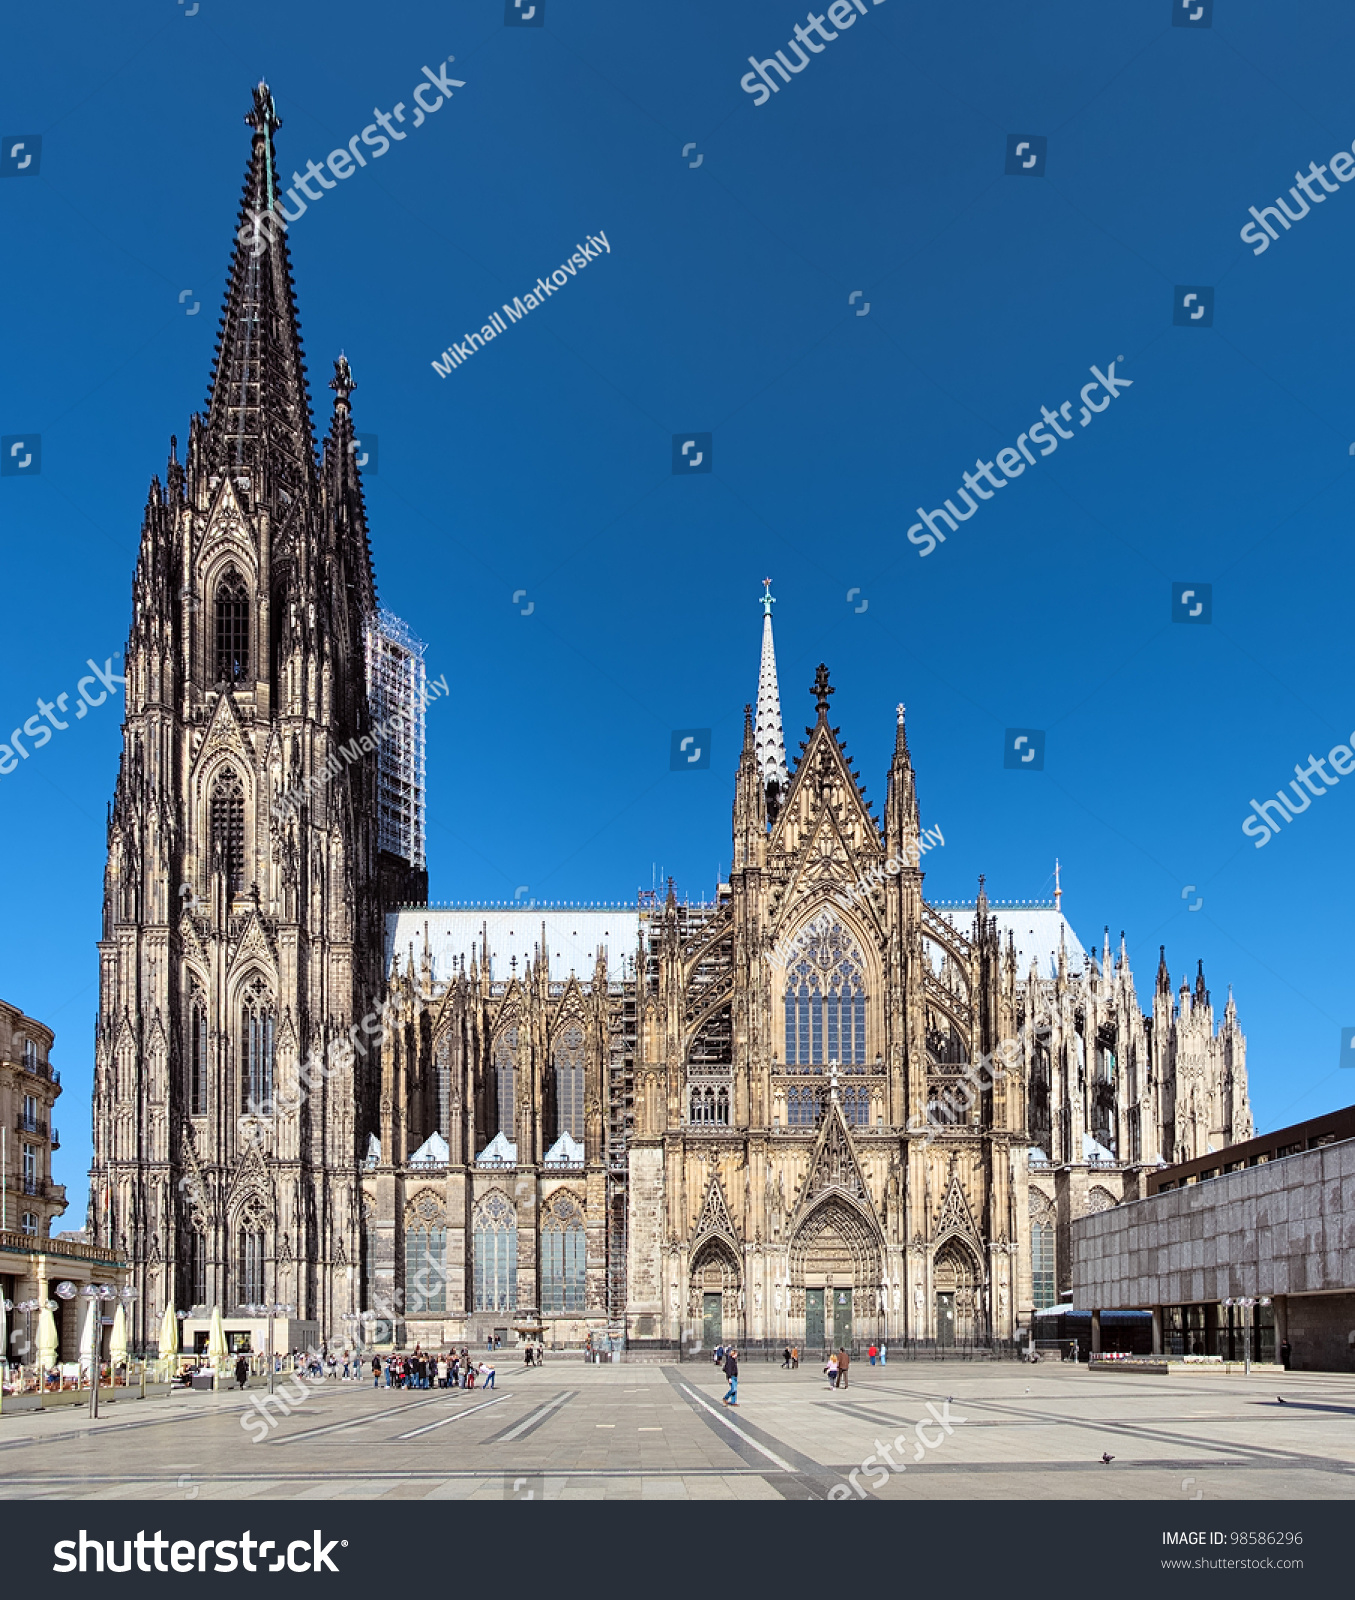 Cologne Cathedral At Dusk Evening Cityscape Wallpaper: Cologne Cathedral On The South Side, Germany Stock Photo